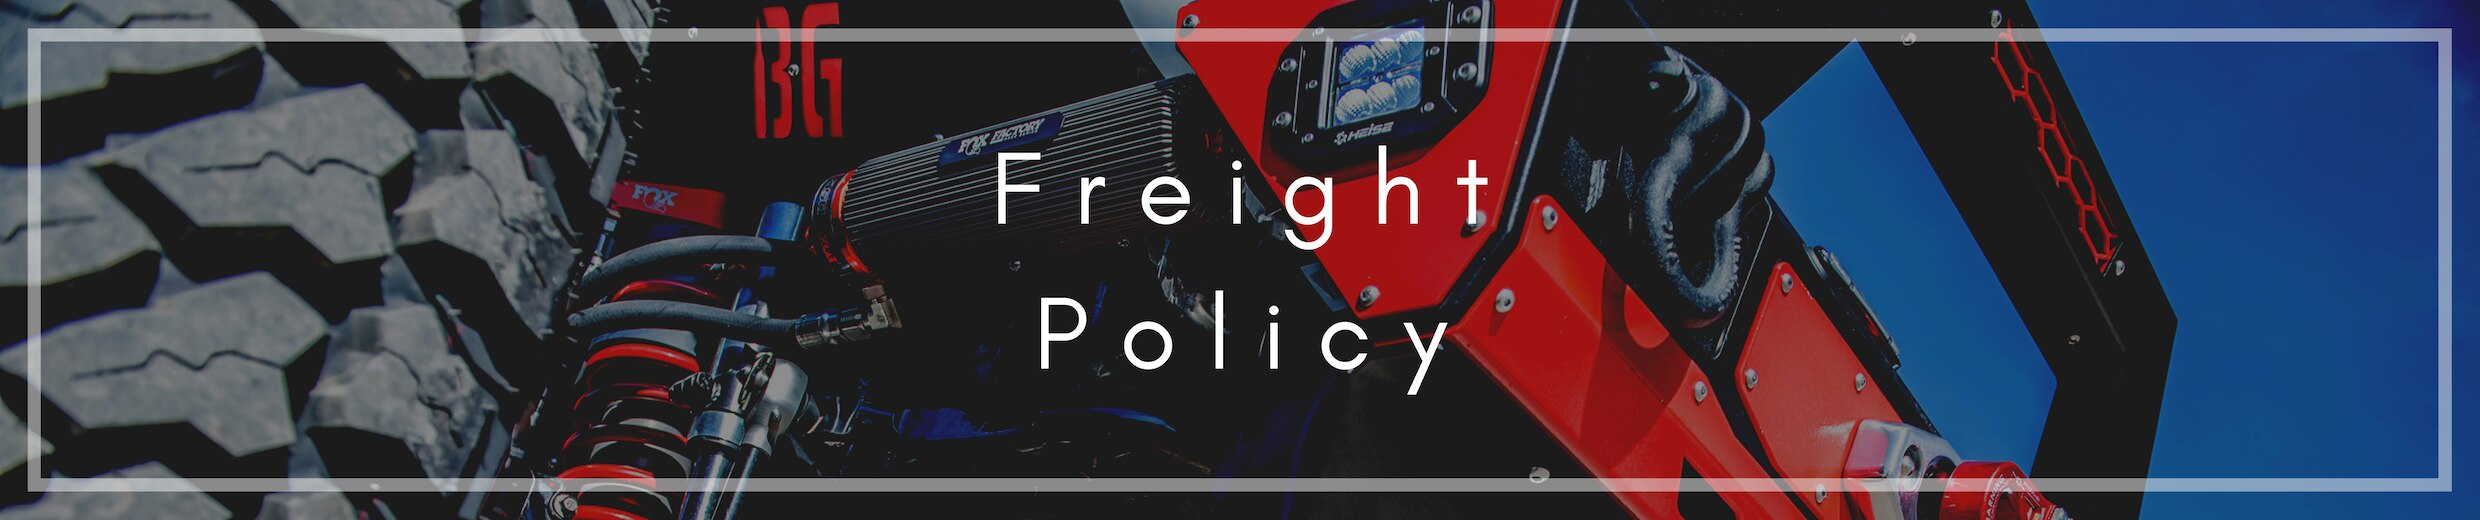 freight-policy.jpg